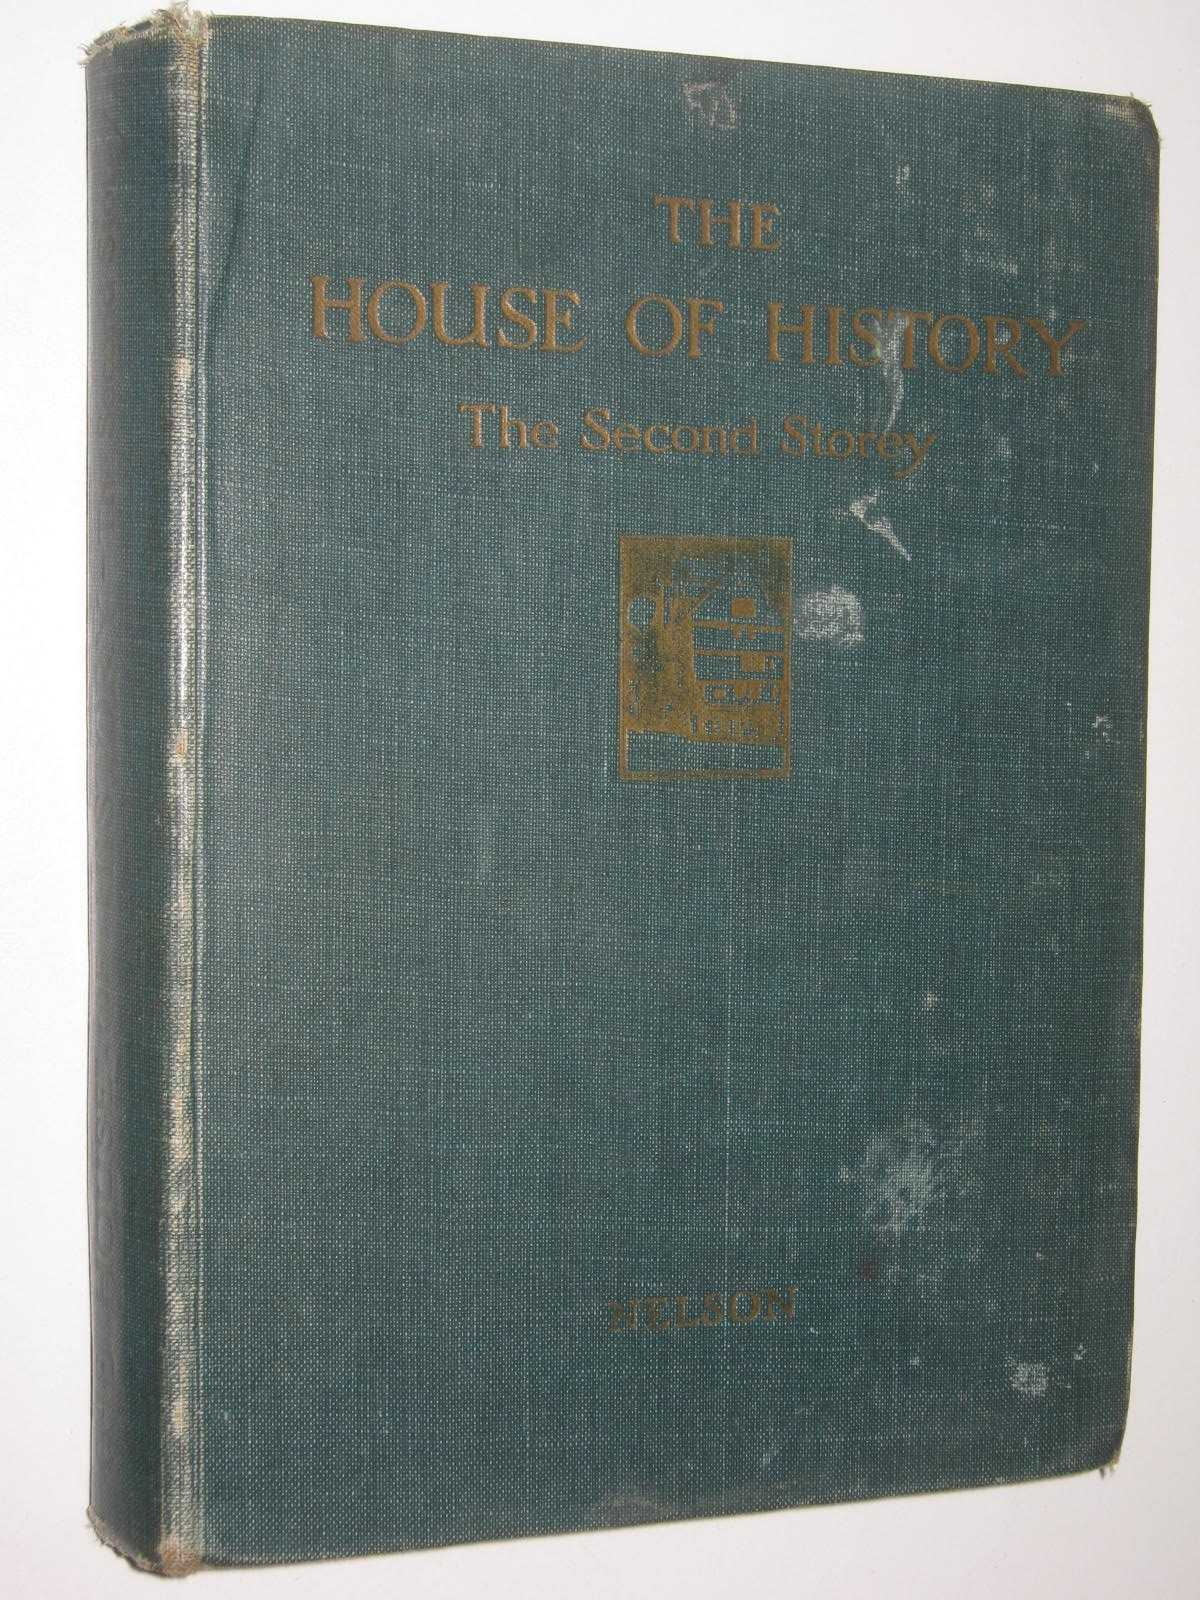 Image for The House Of History : The Second Storey - Early Modern History